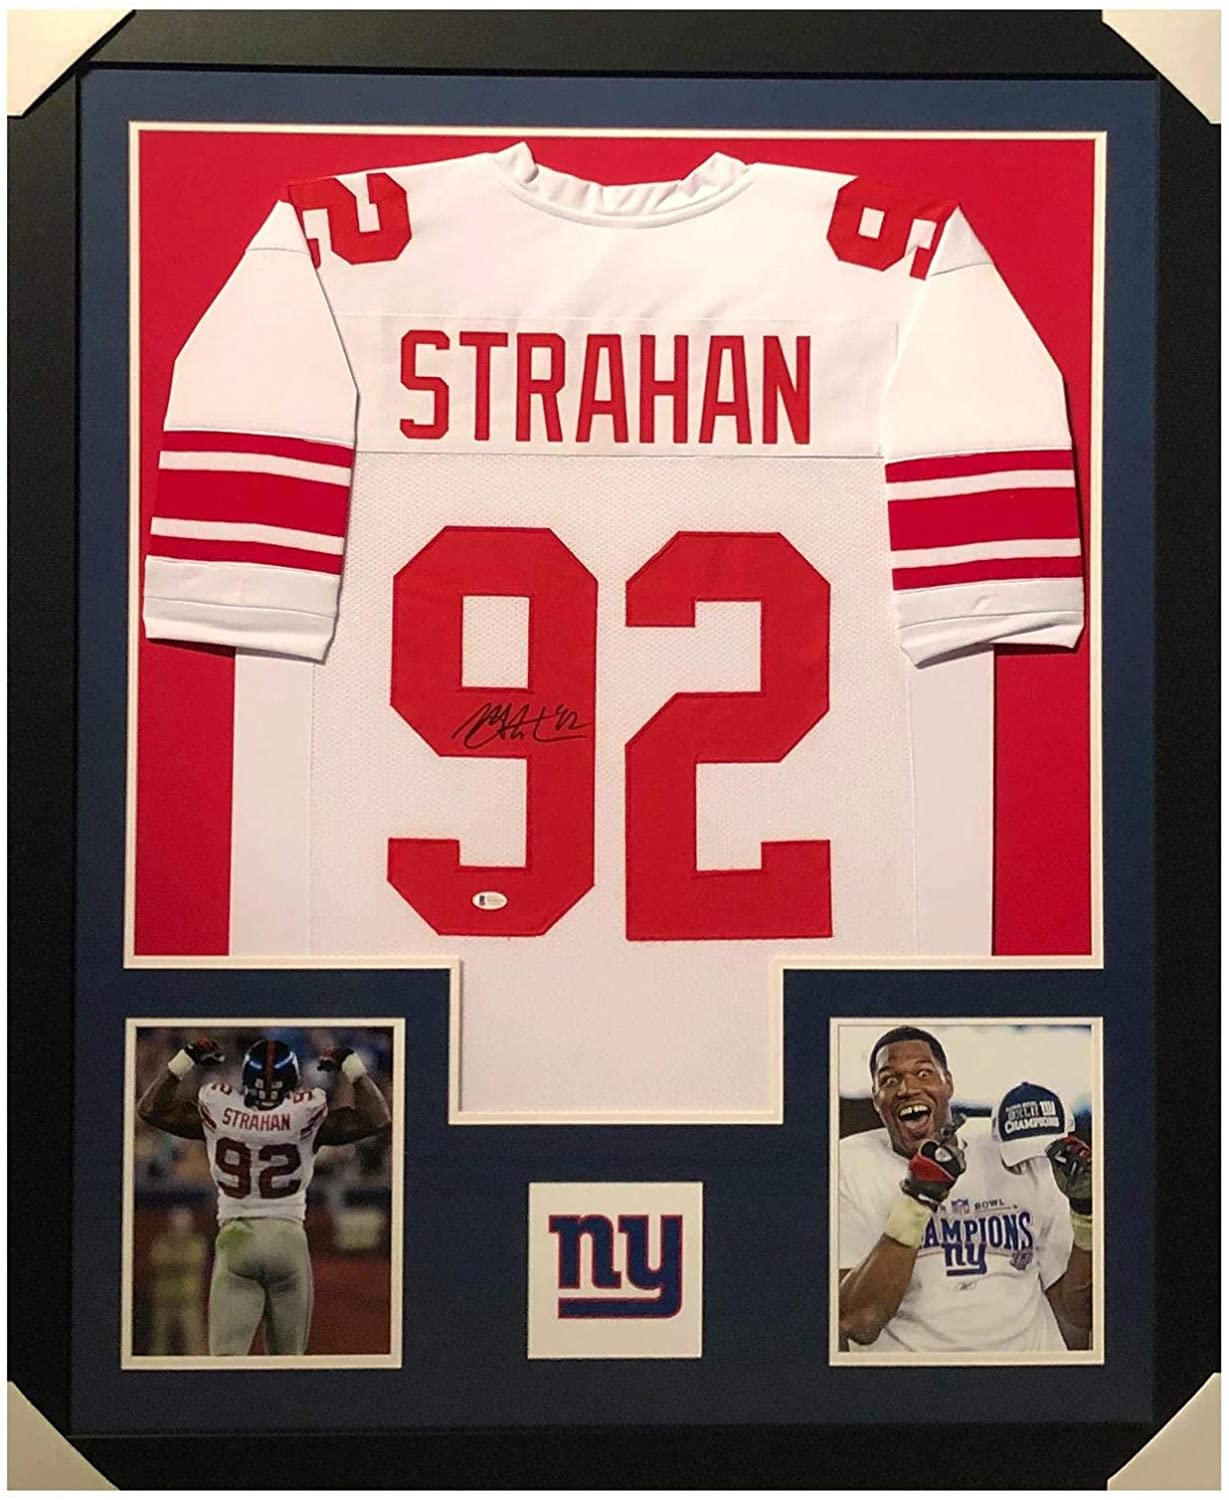 Michael Strahan Signed Jersey - Framed Vertical Layout Pro Edition White Beckett) - Beckett Authentication